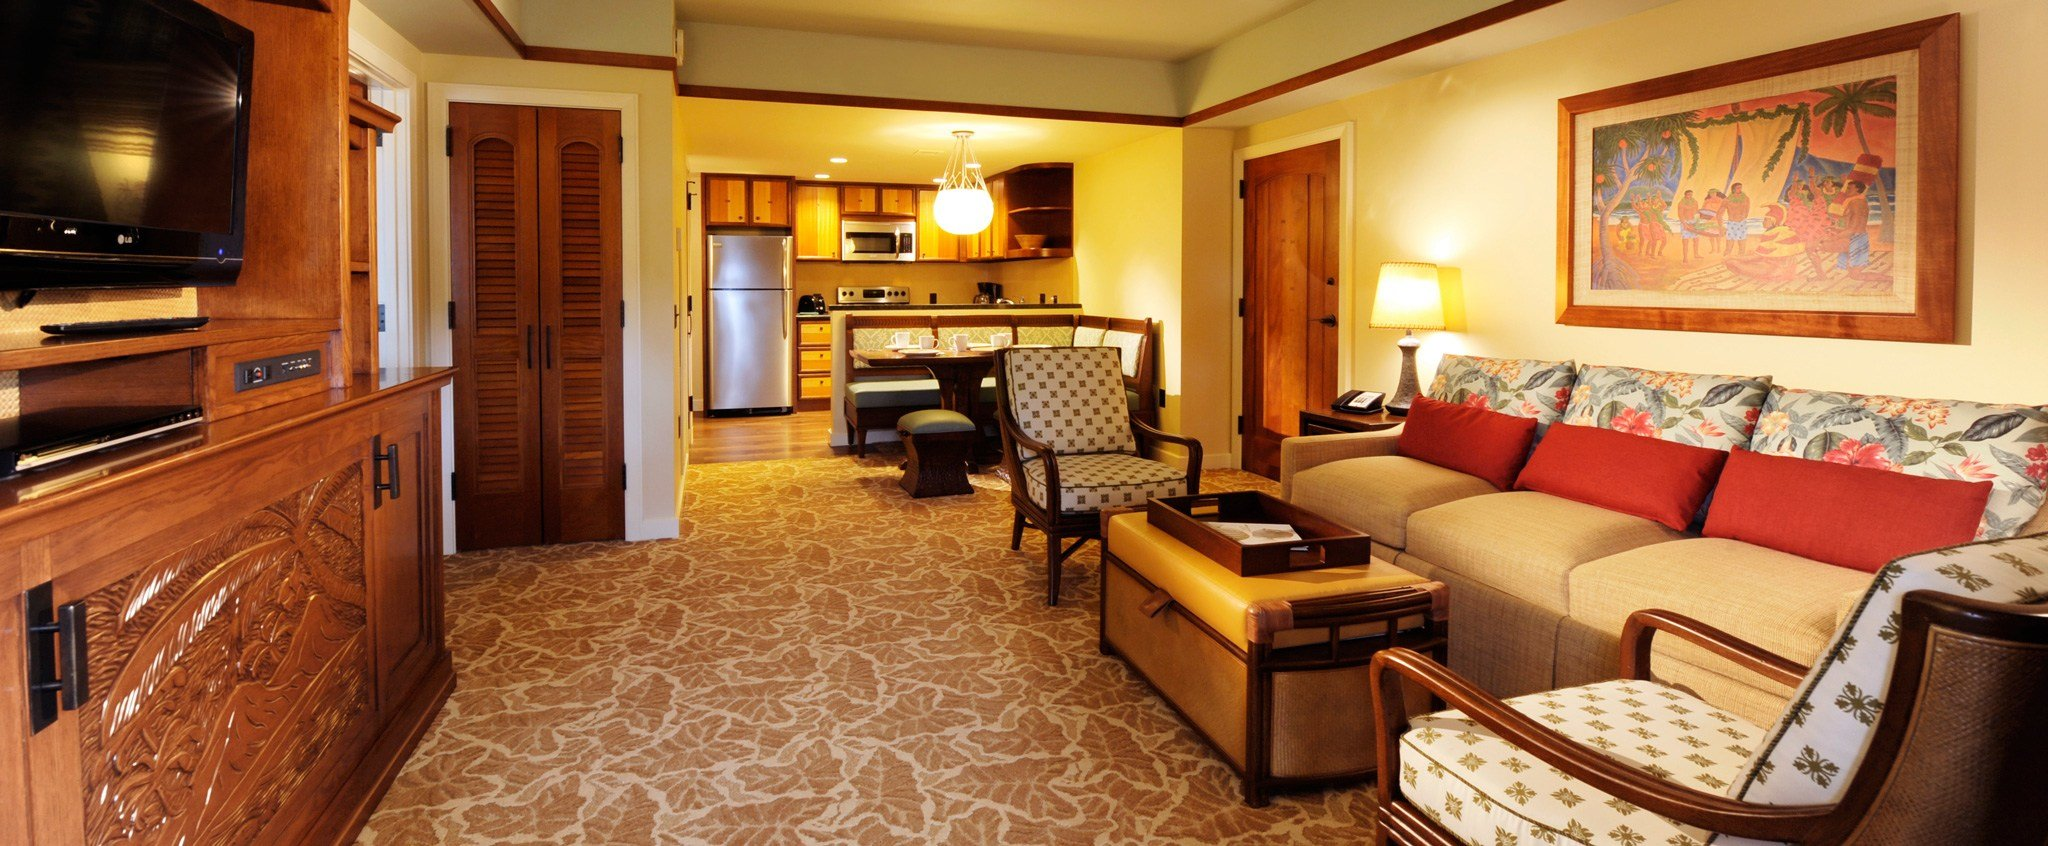 Best One Bedroom Villa Aulani Hawaii Resort Spa With Pictures